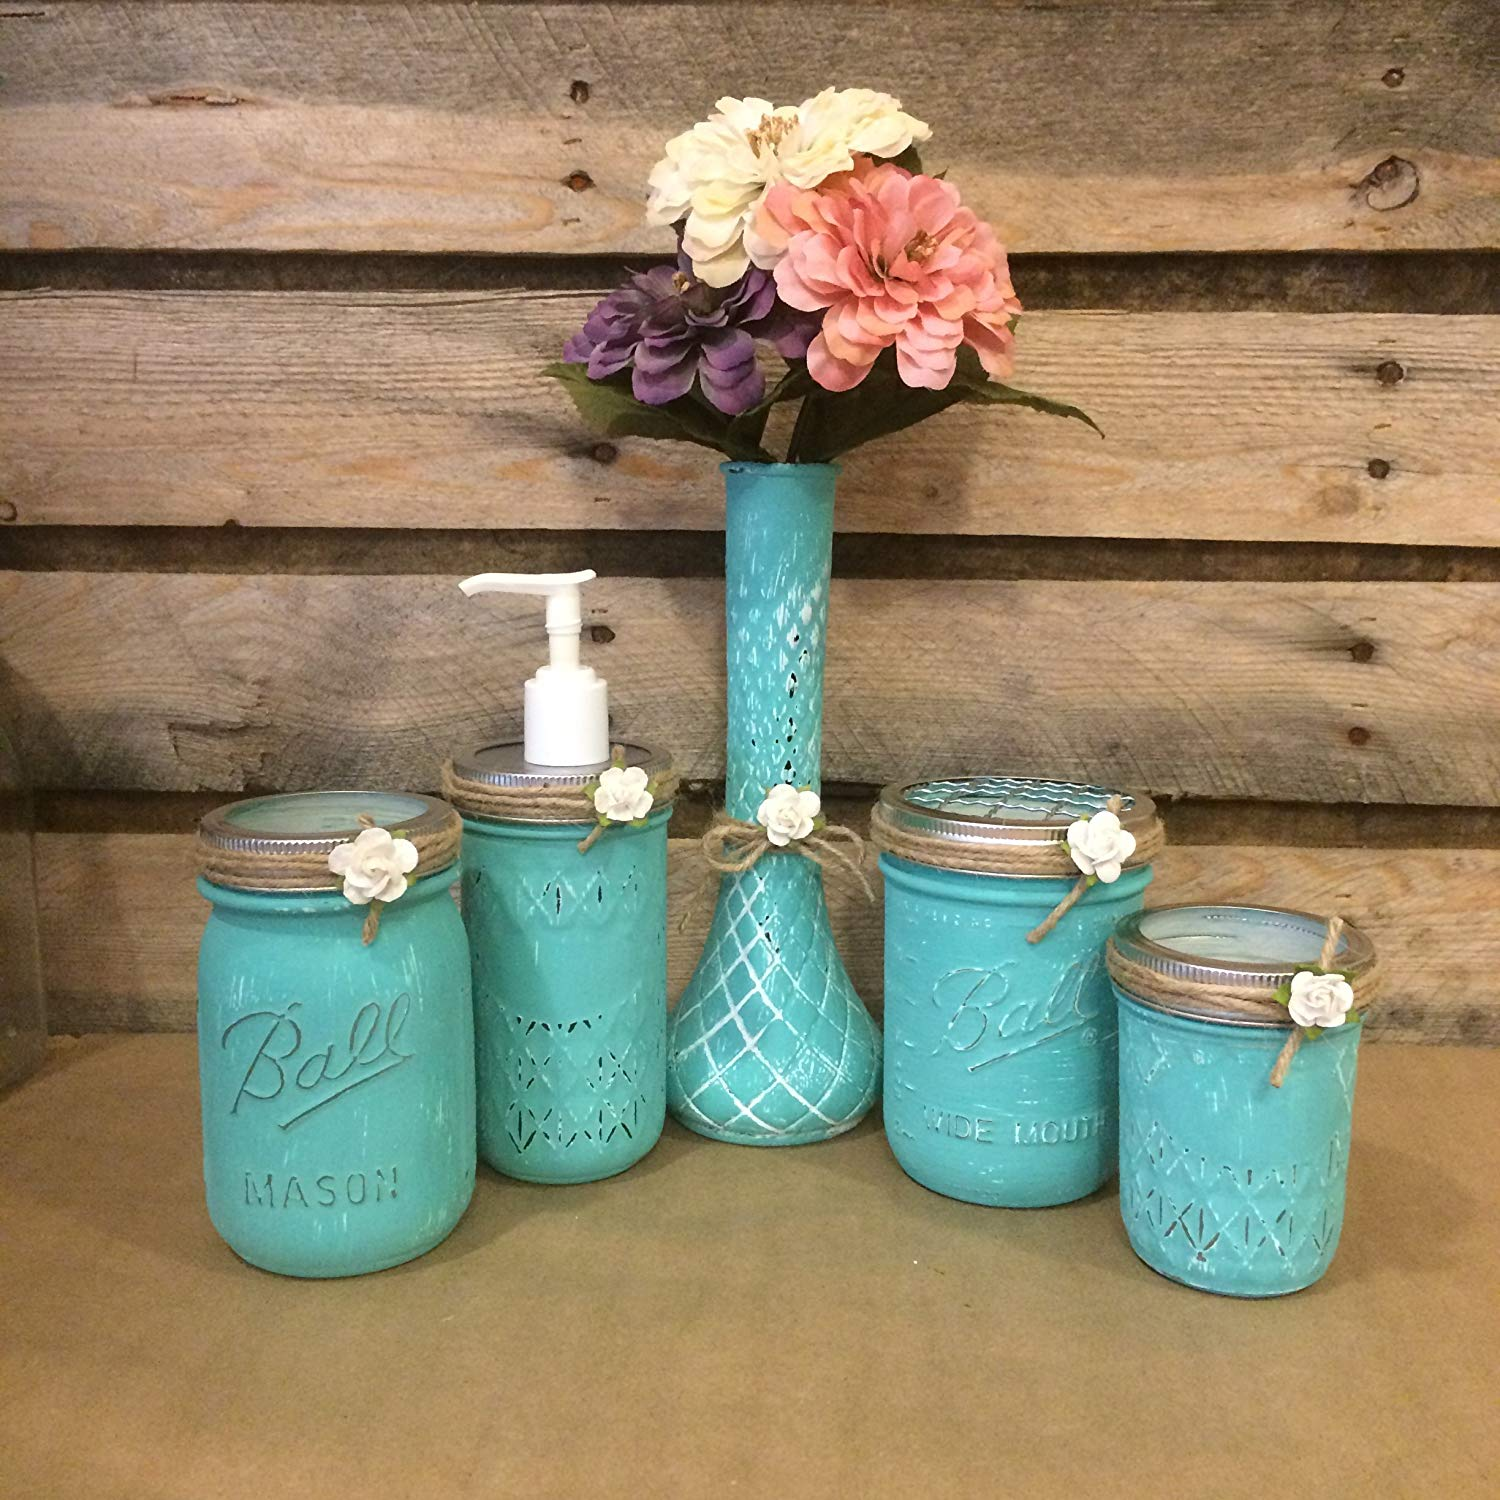 Hand Painted Mason Jar Desk Set or Mason Jar Bathroom Set in Turquoise and White with vintage Hoosier Glass bud vase.